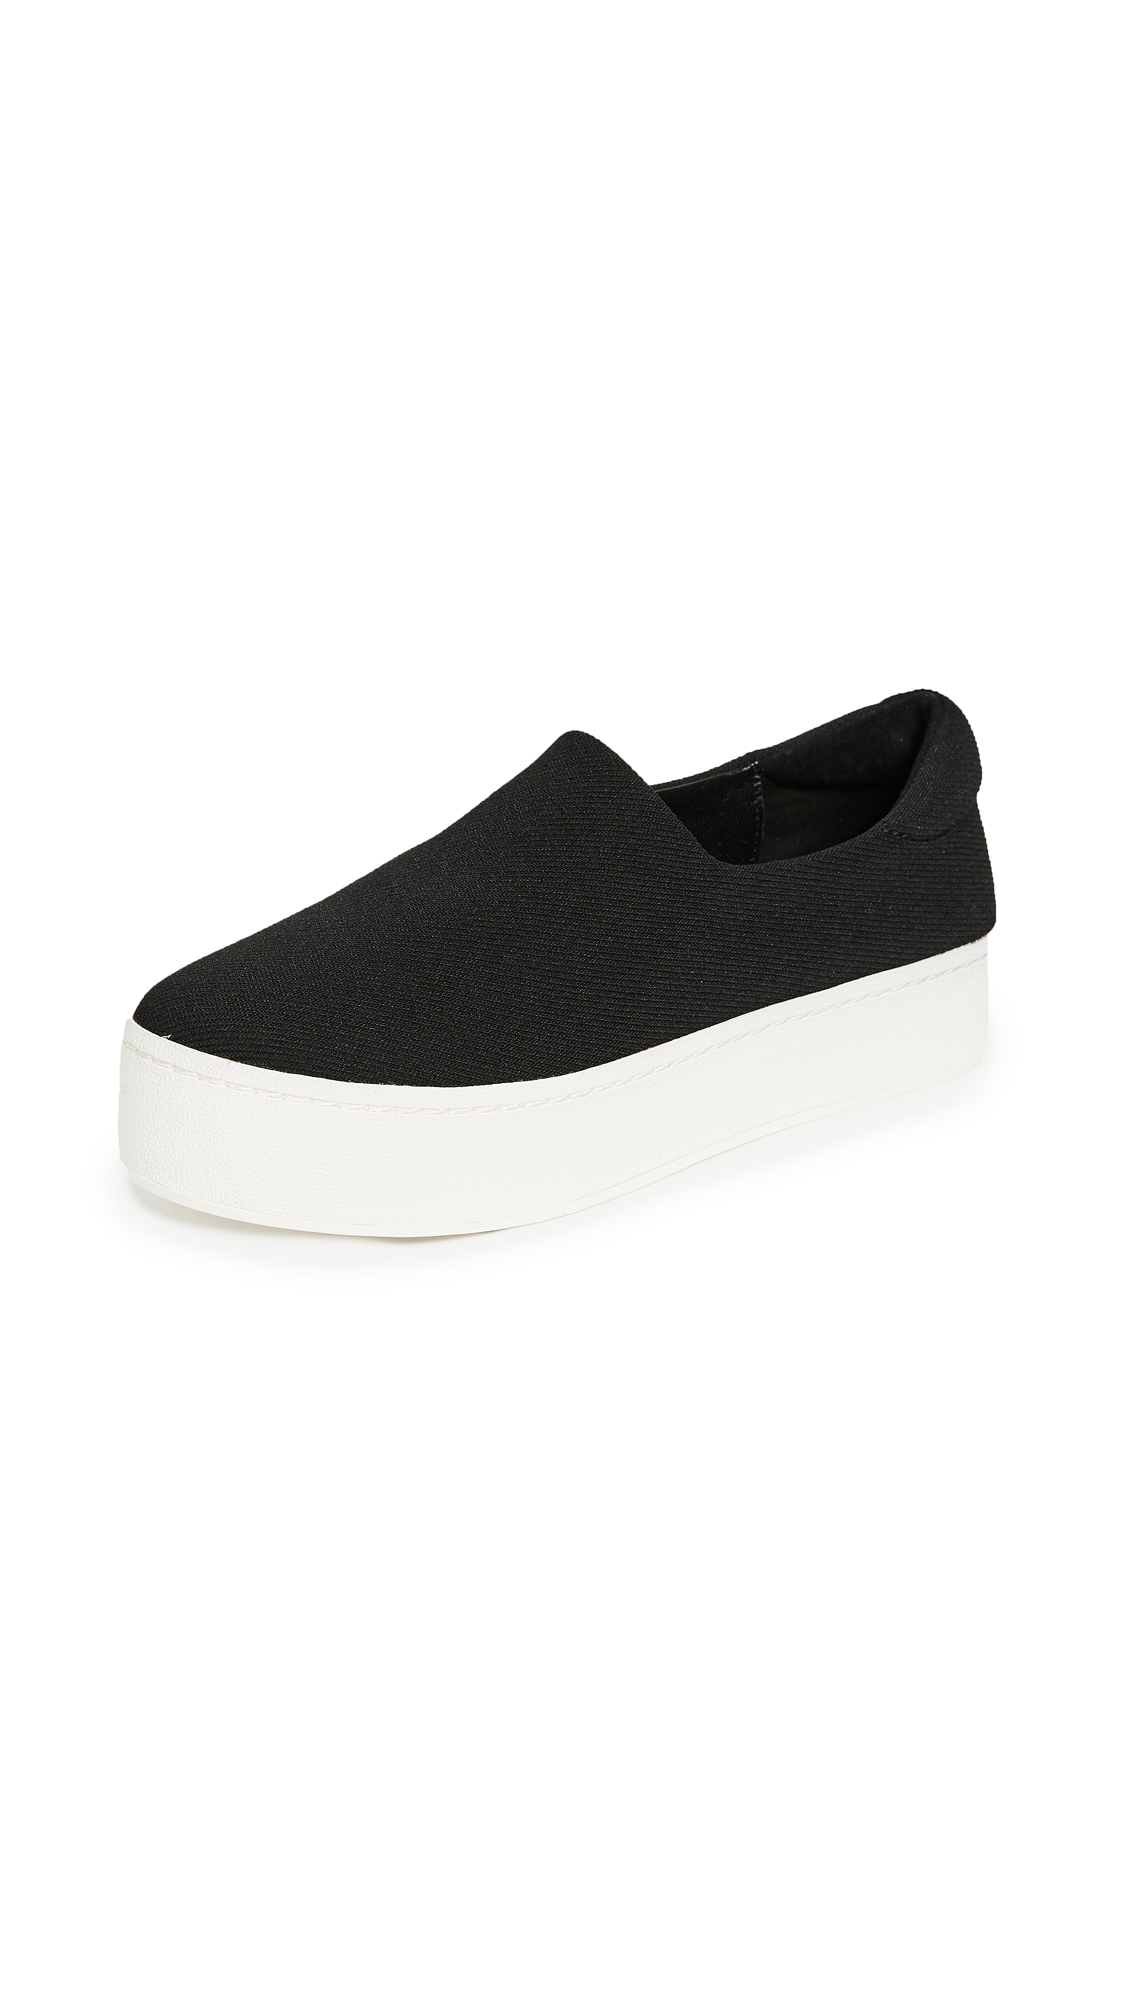 Opening Ceremony Cici Slip On Platform Sneakers - Black